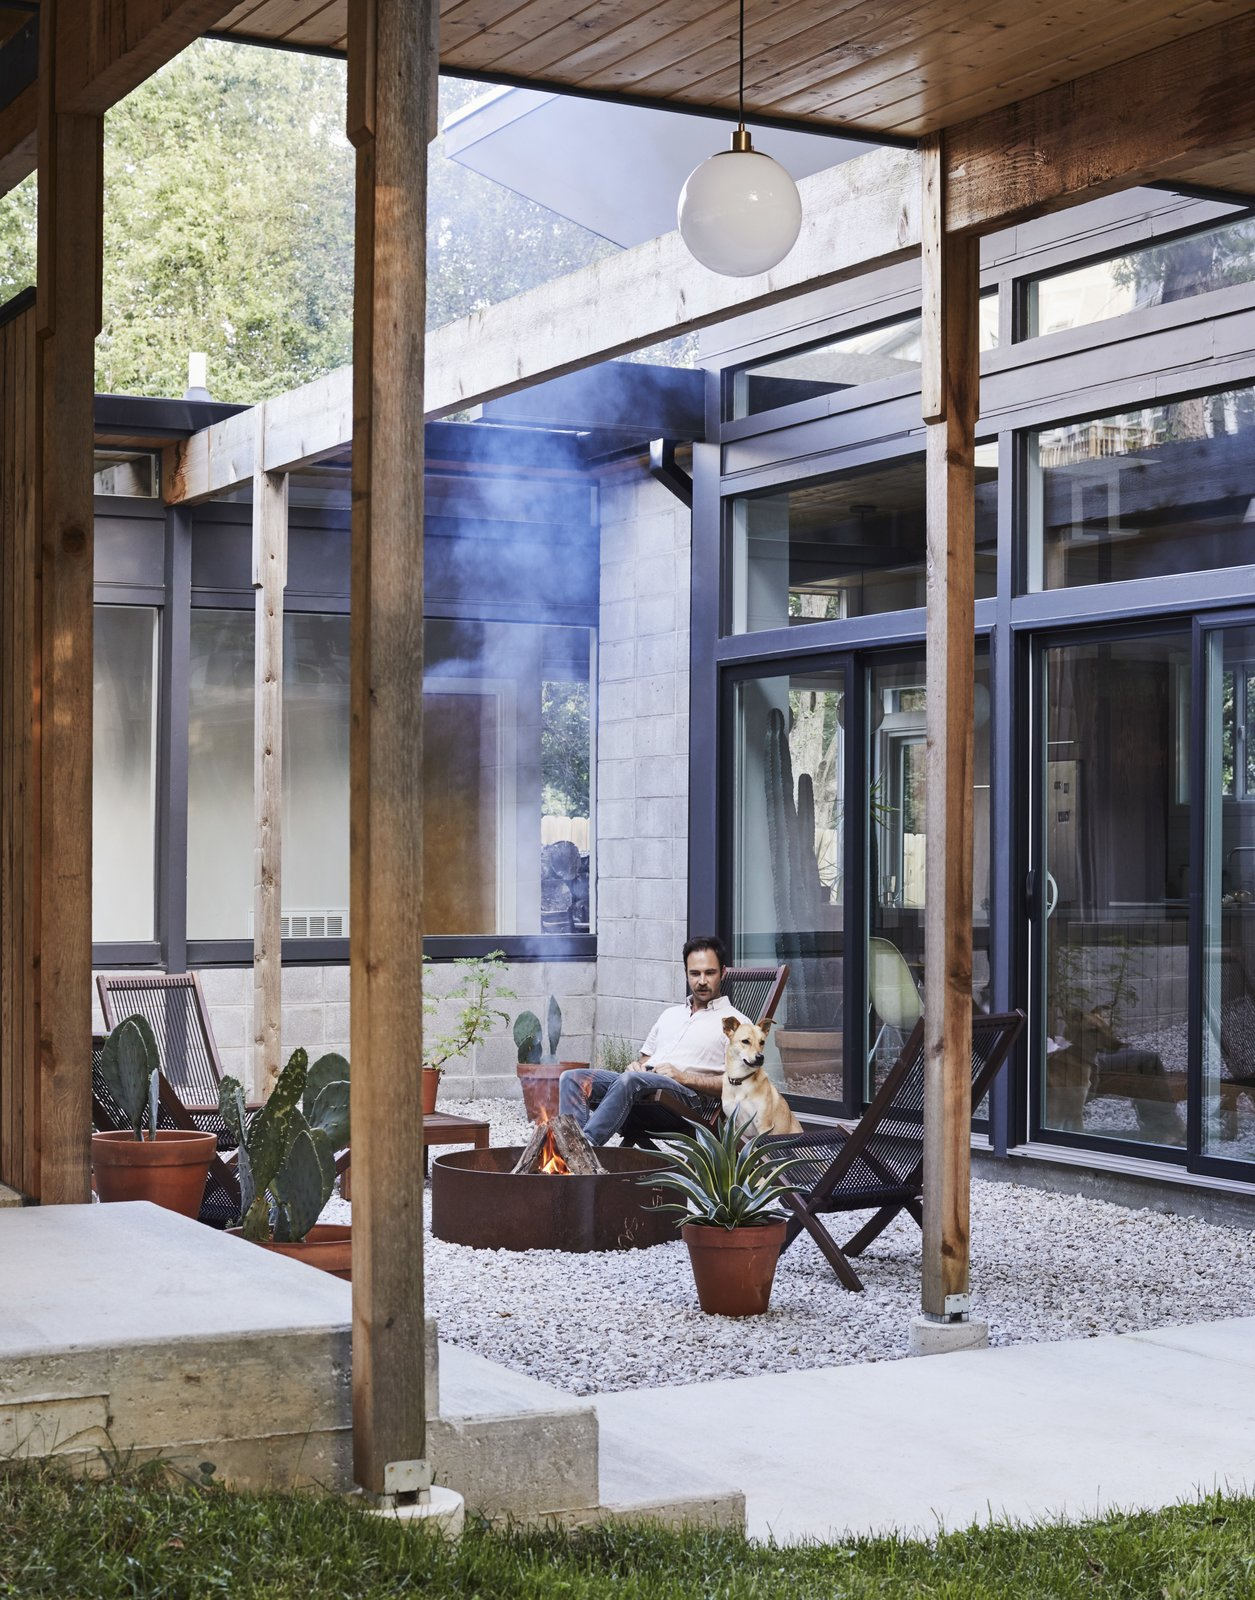 Outdoor, Walkways, and Hanging Lighting Bob sits in the entry courtyard with his dog, Goya.  My Photos from A Self-Taught Designer Builds a Midcentury-Inspired Home on a Budget